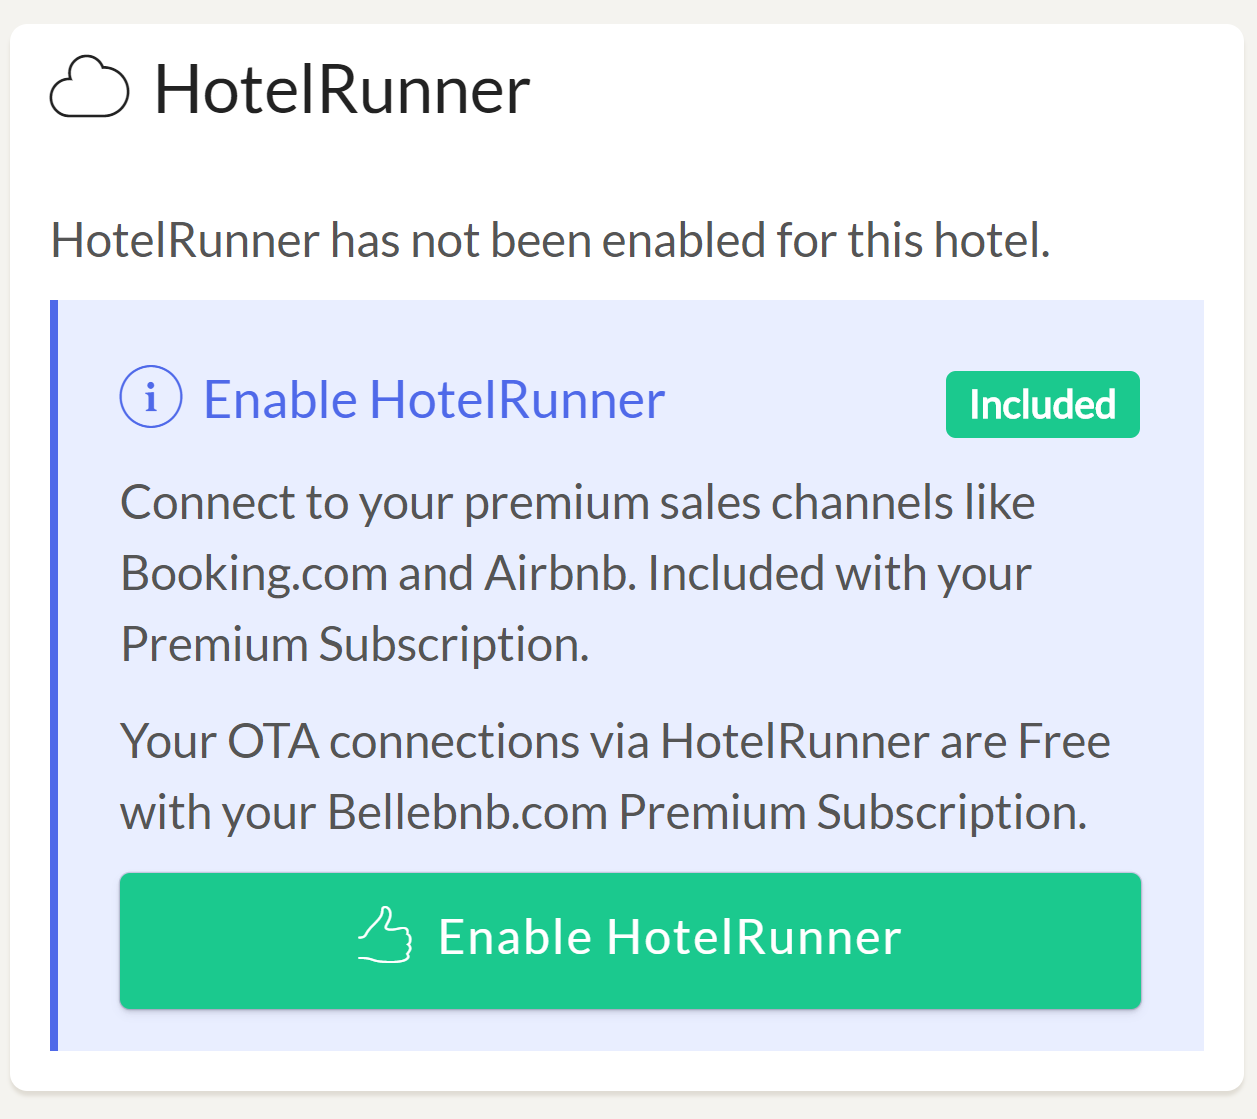 Enable MyHotelCRS.com